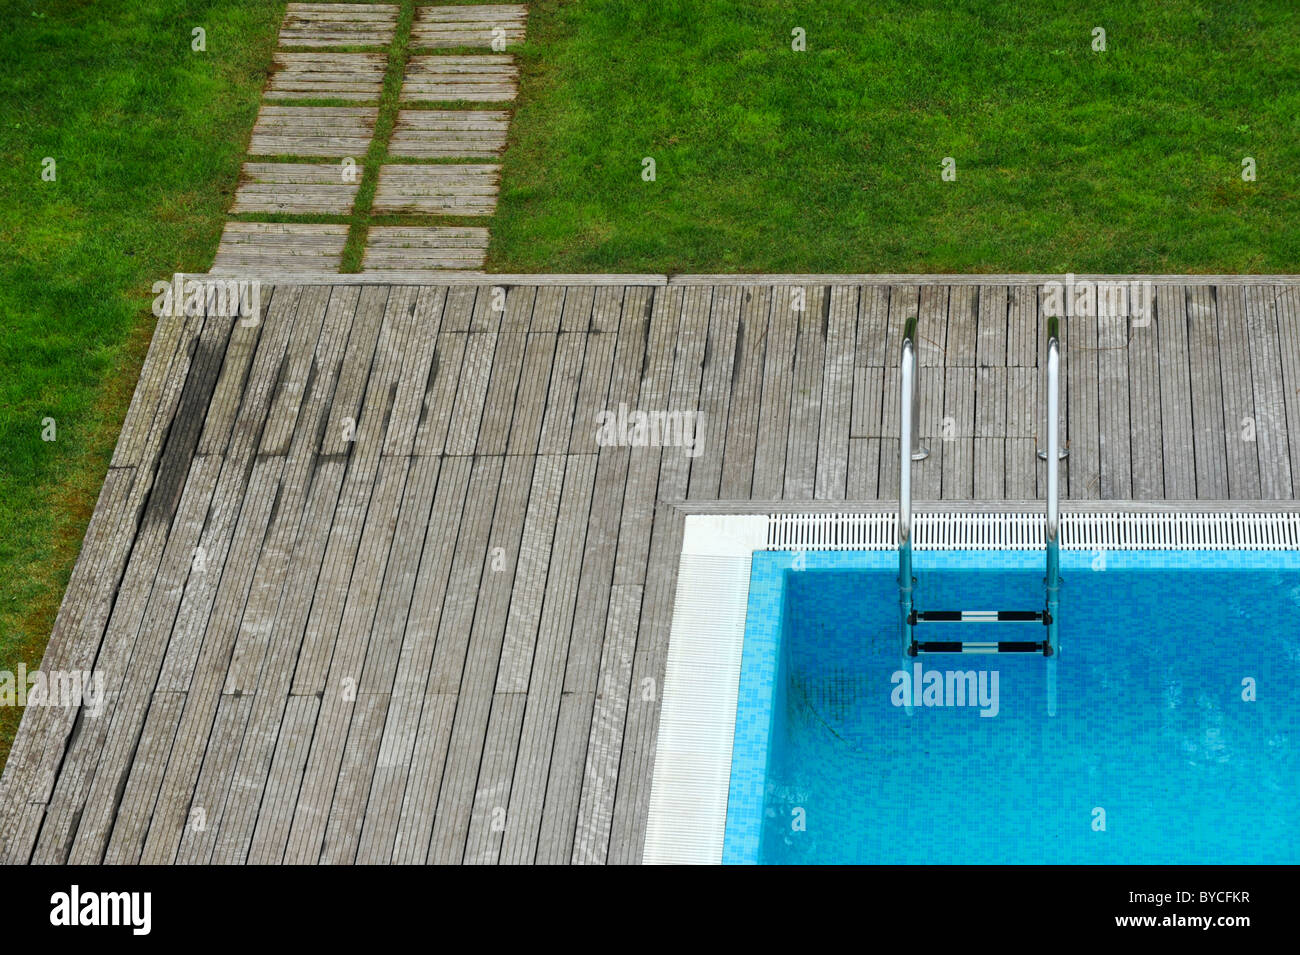 aerial view of an outdoor swimming pool with wood deck and lawn - Rectangle Pool Aerial View